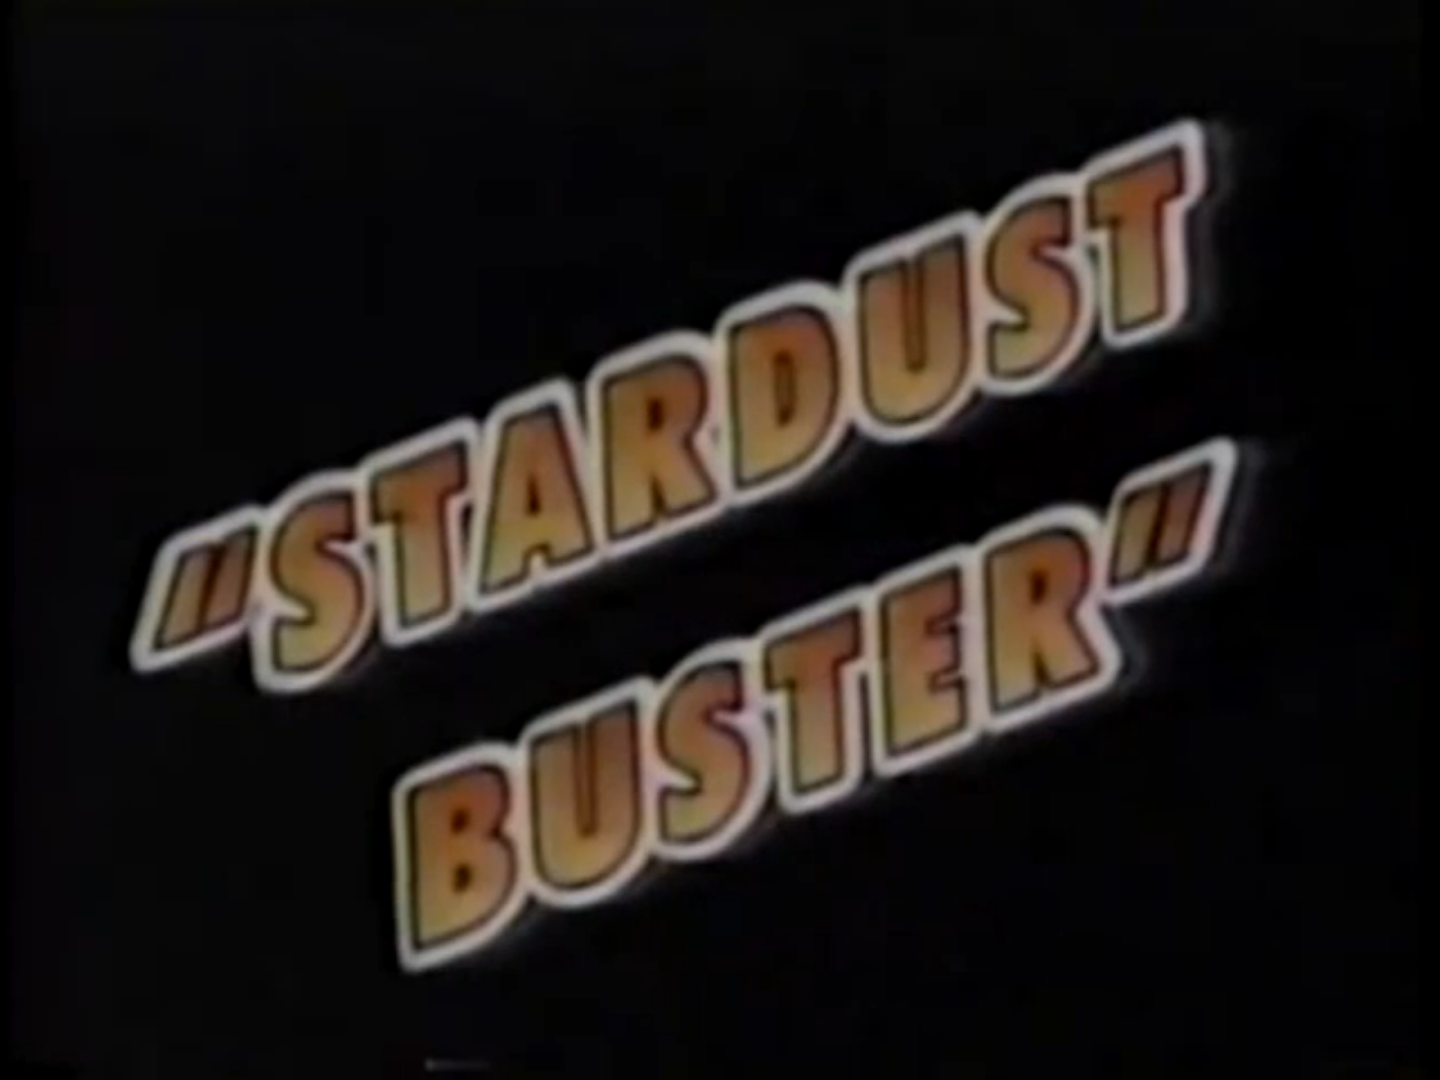 Stardust Buster